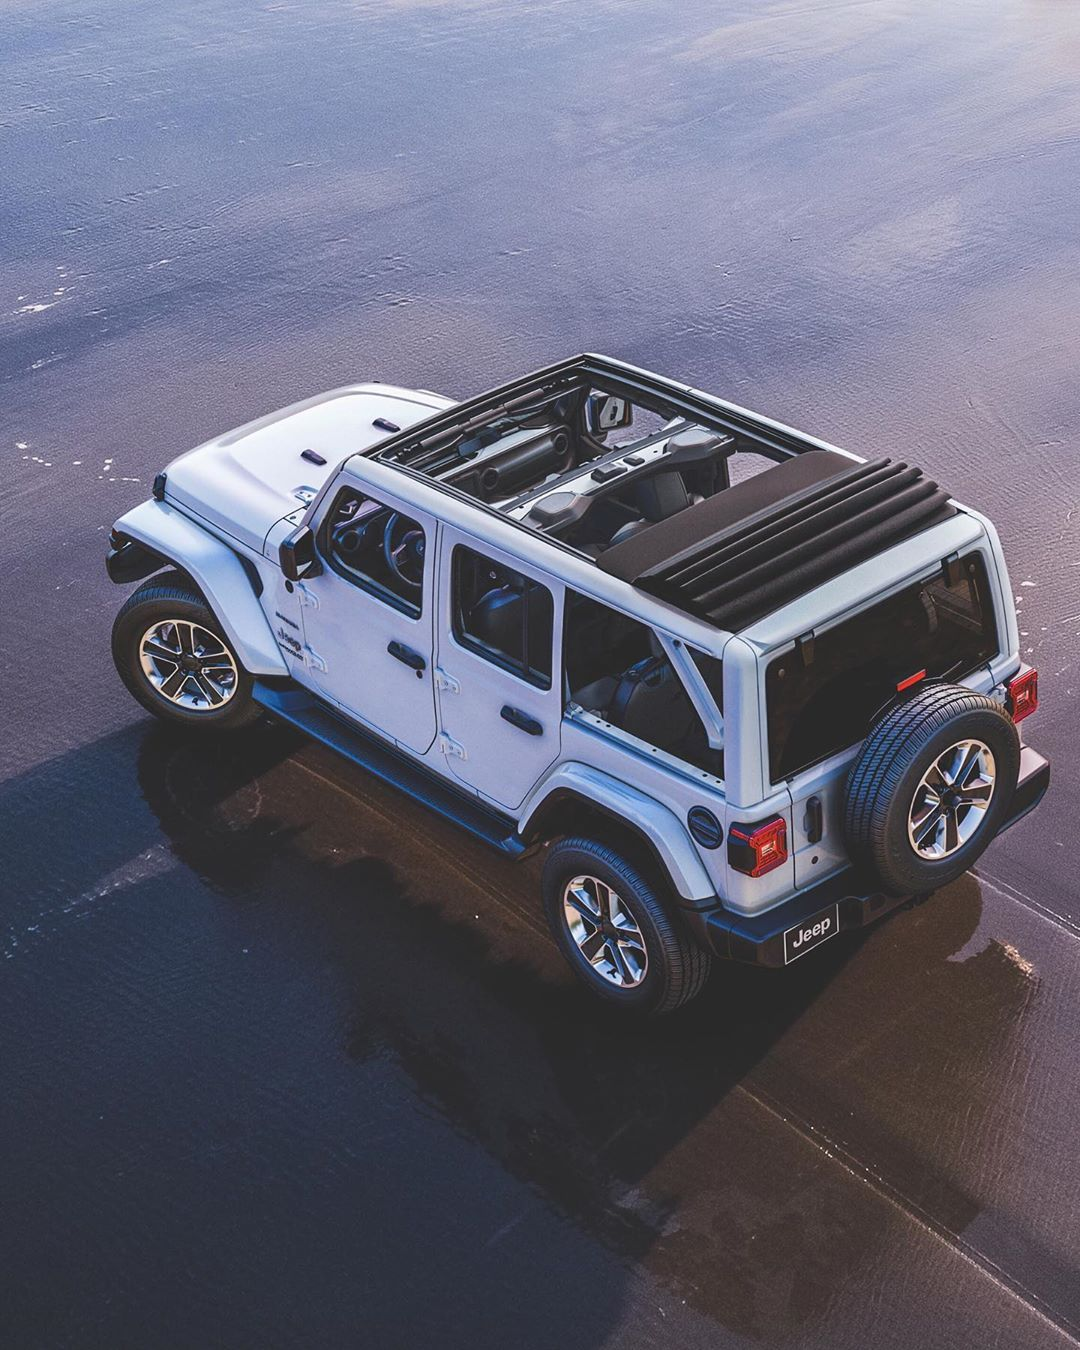 Jeep S Instagram Profile Post Take It All In Jeep